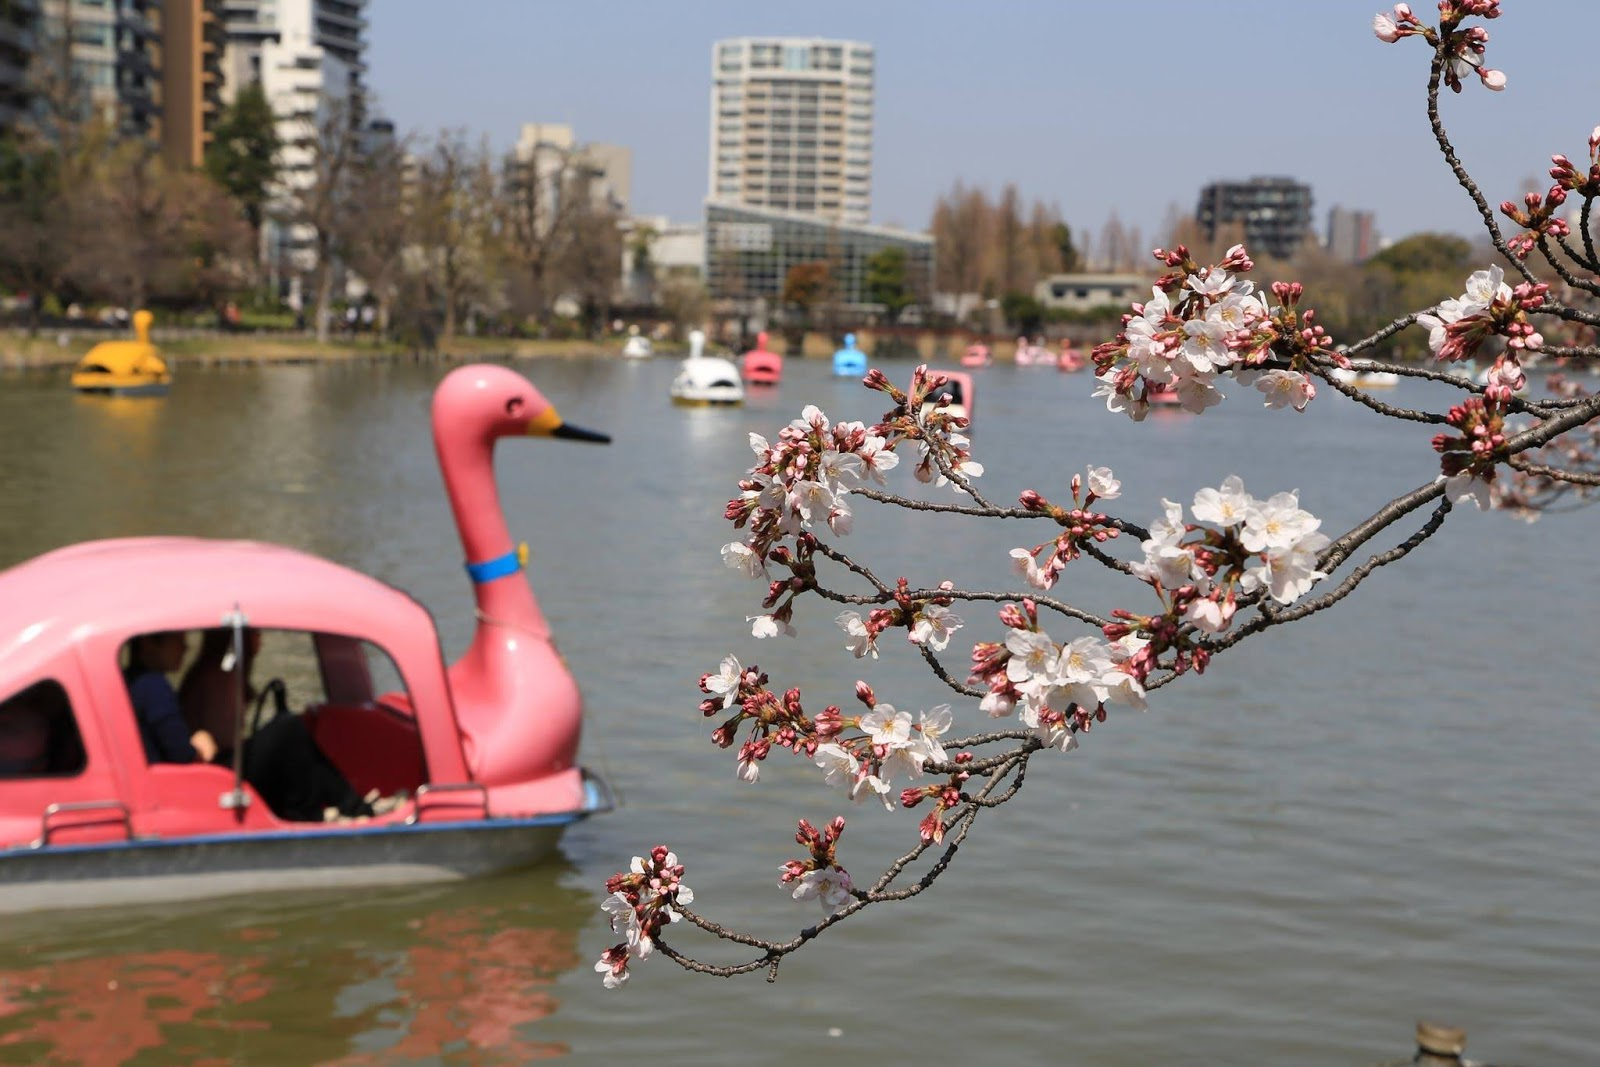 The Holiday And Travel Magazine March 2016 Series Paris Im In Love 200ml If You Are Looking For A Place To View Cherry Blossoms Tokyo This Weekend Then Make Visit Ueno Park Enjoy Atmosphere